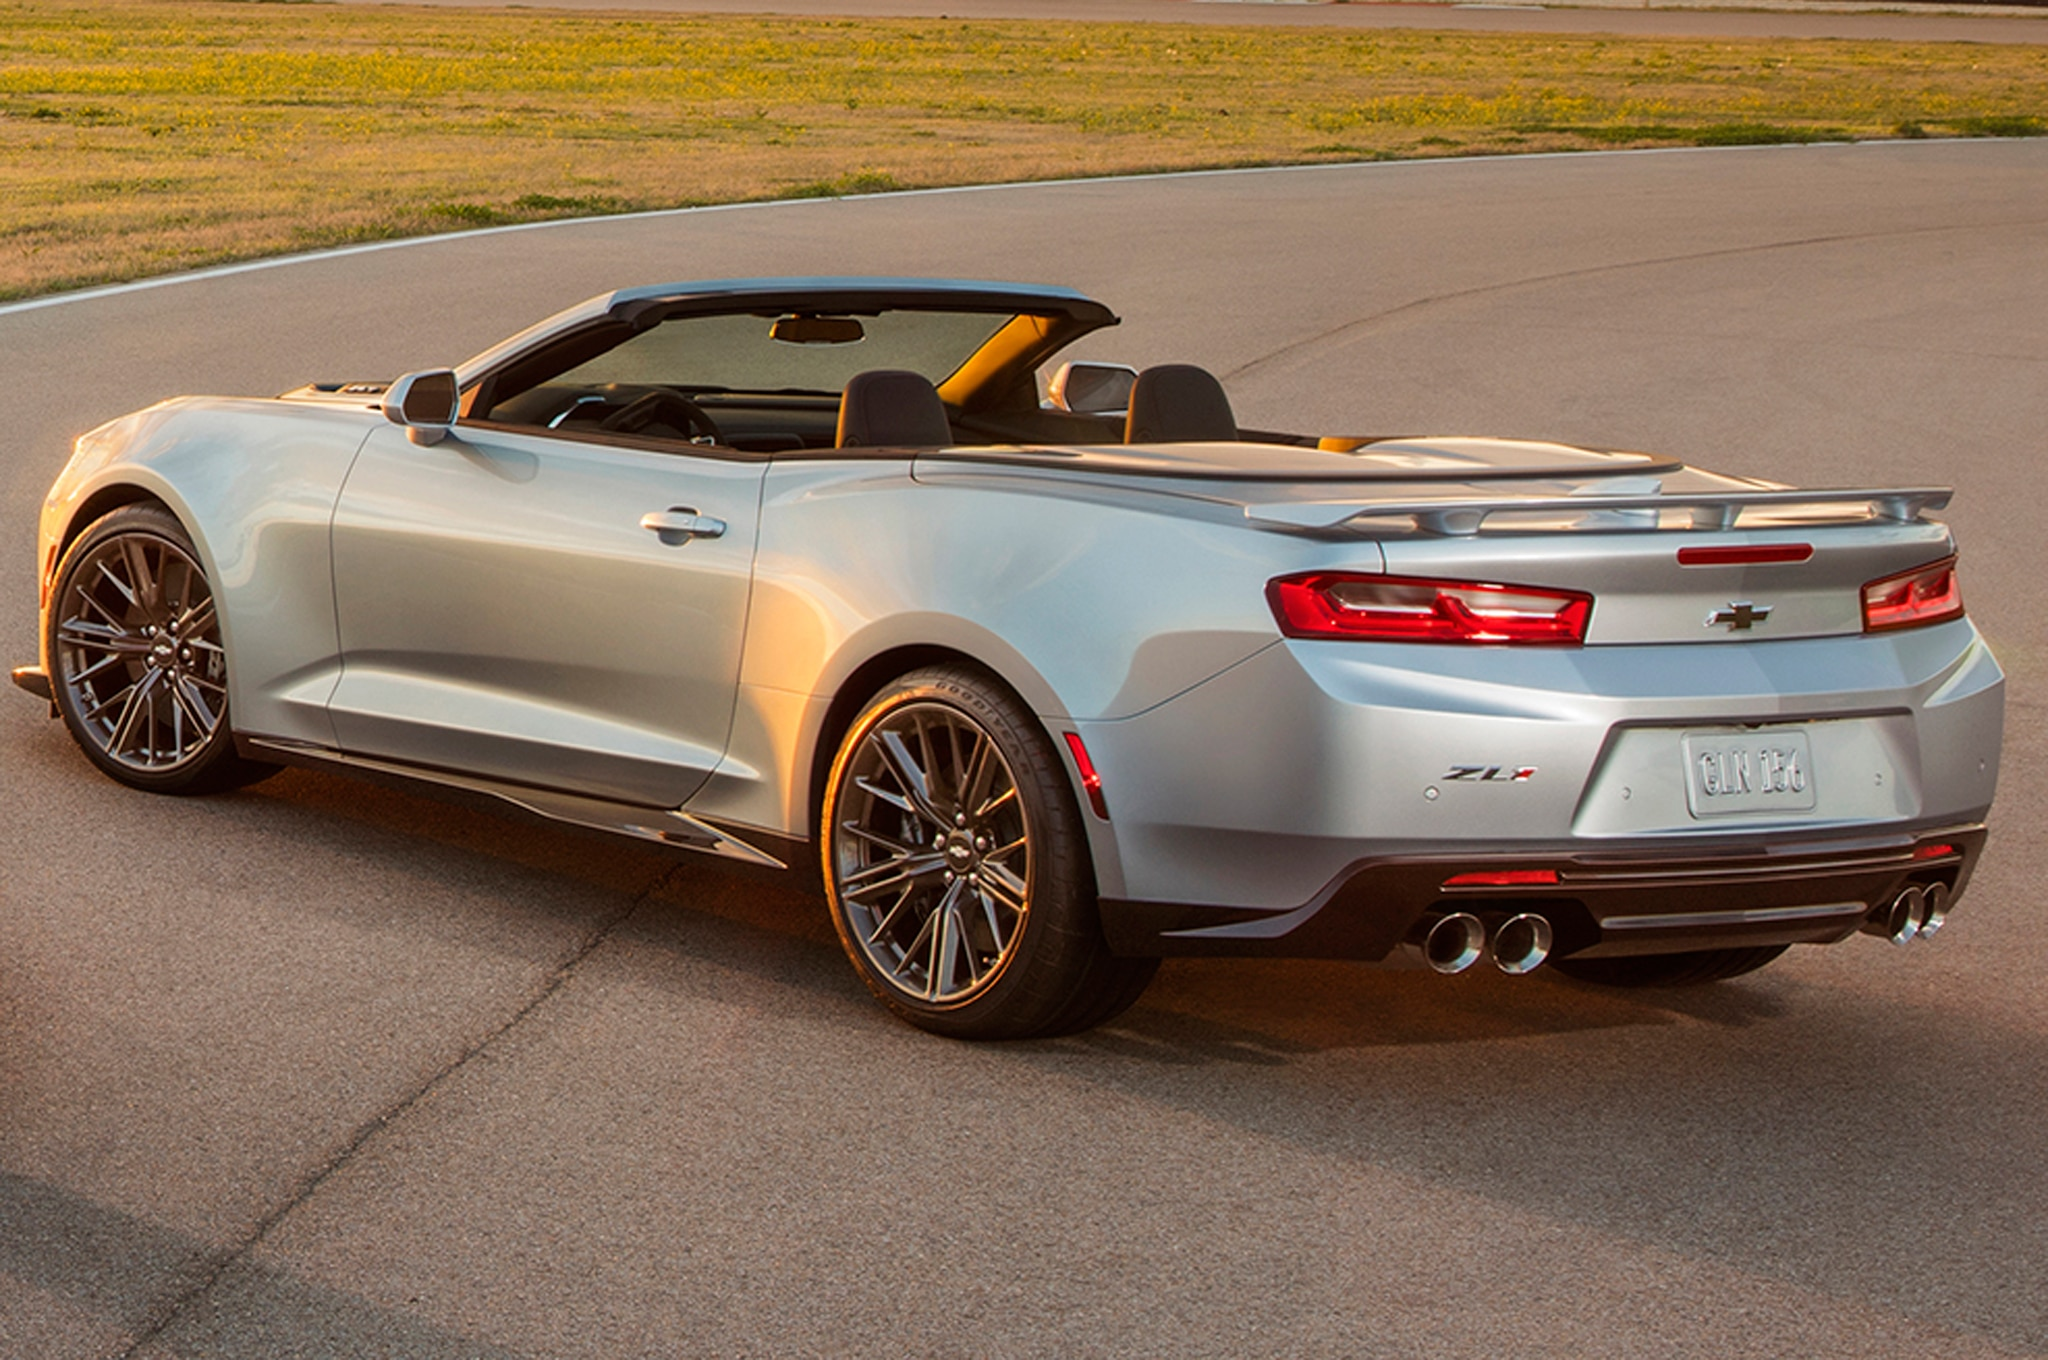 zl1 camaro convertible for sale autos post. Black Bedroom Furniture Sets. Home Design Ideas